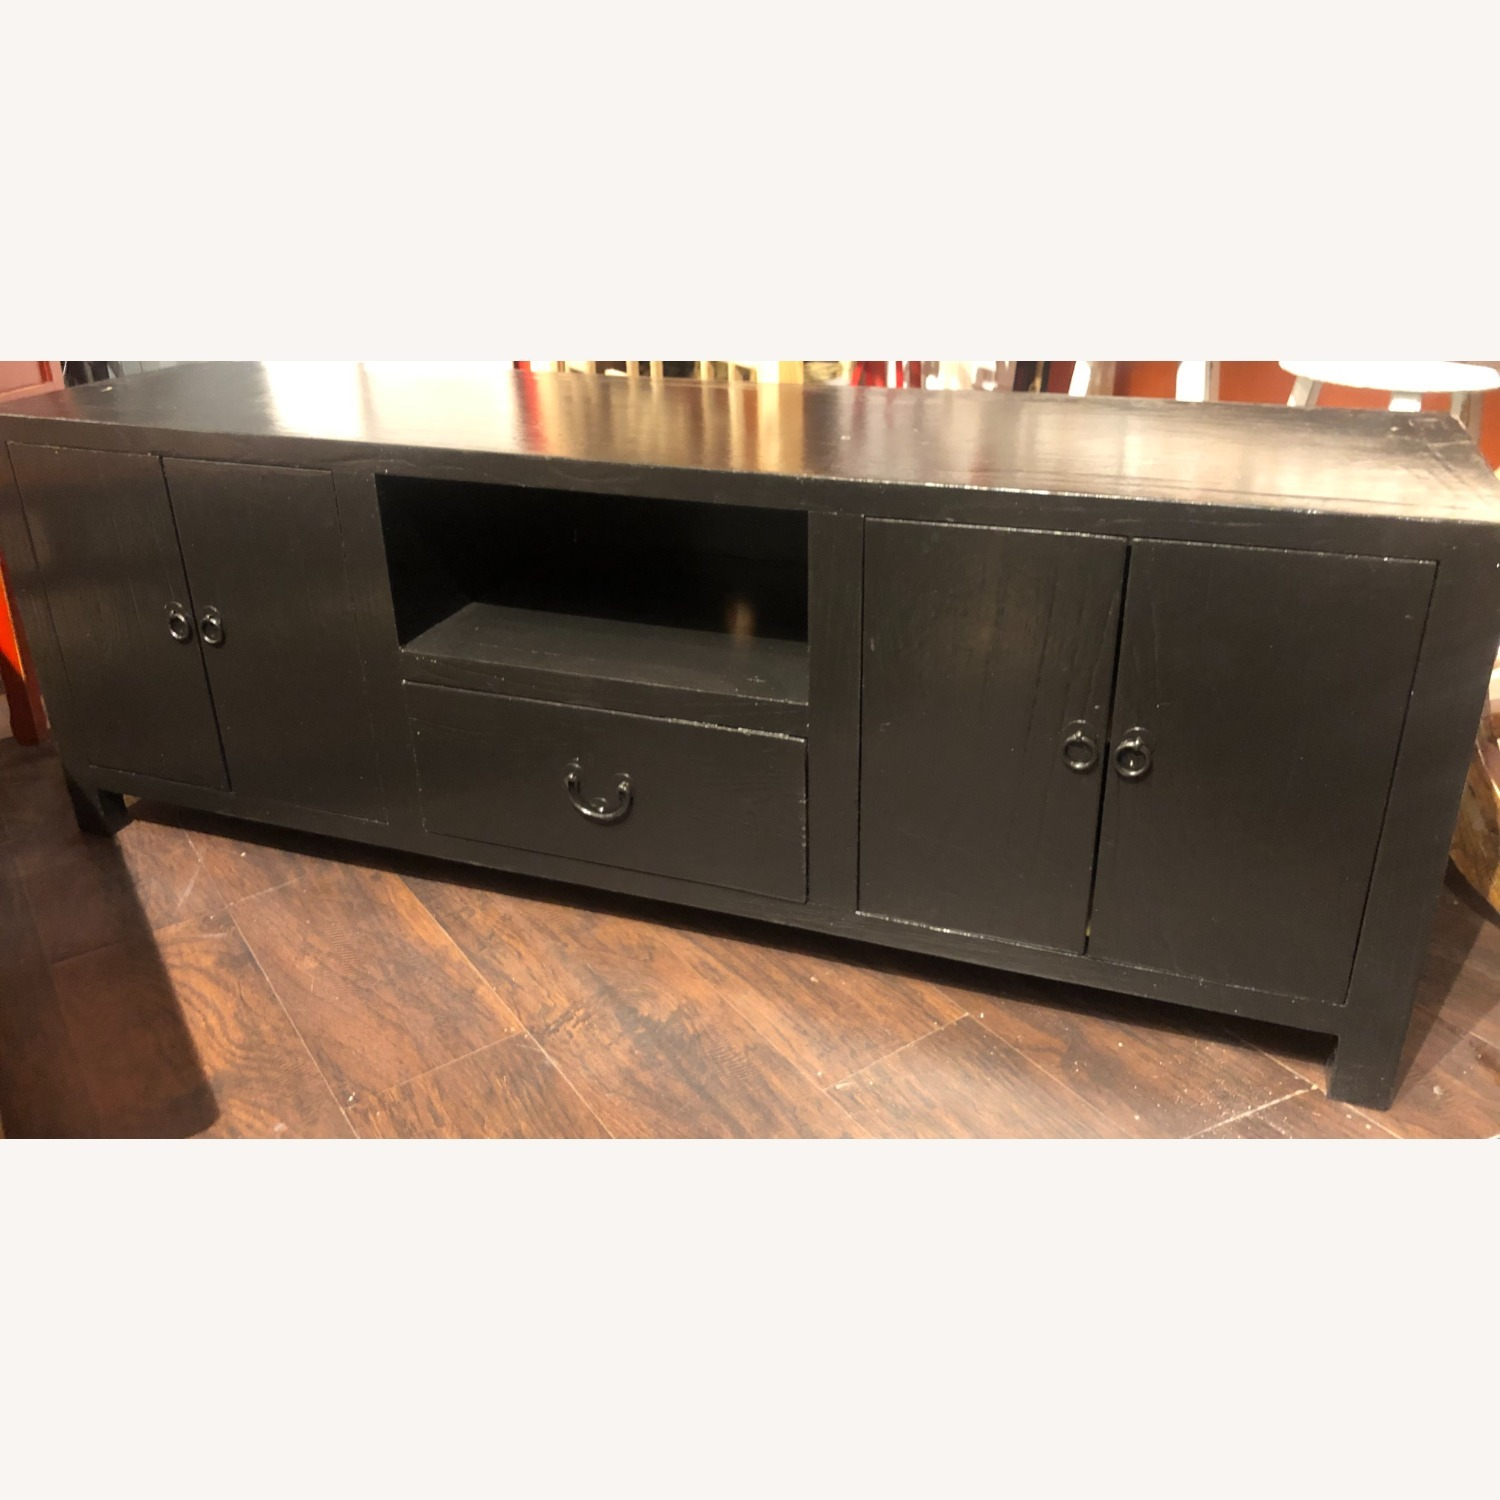 Elmwood Tv Cabinet - image-3